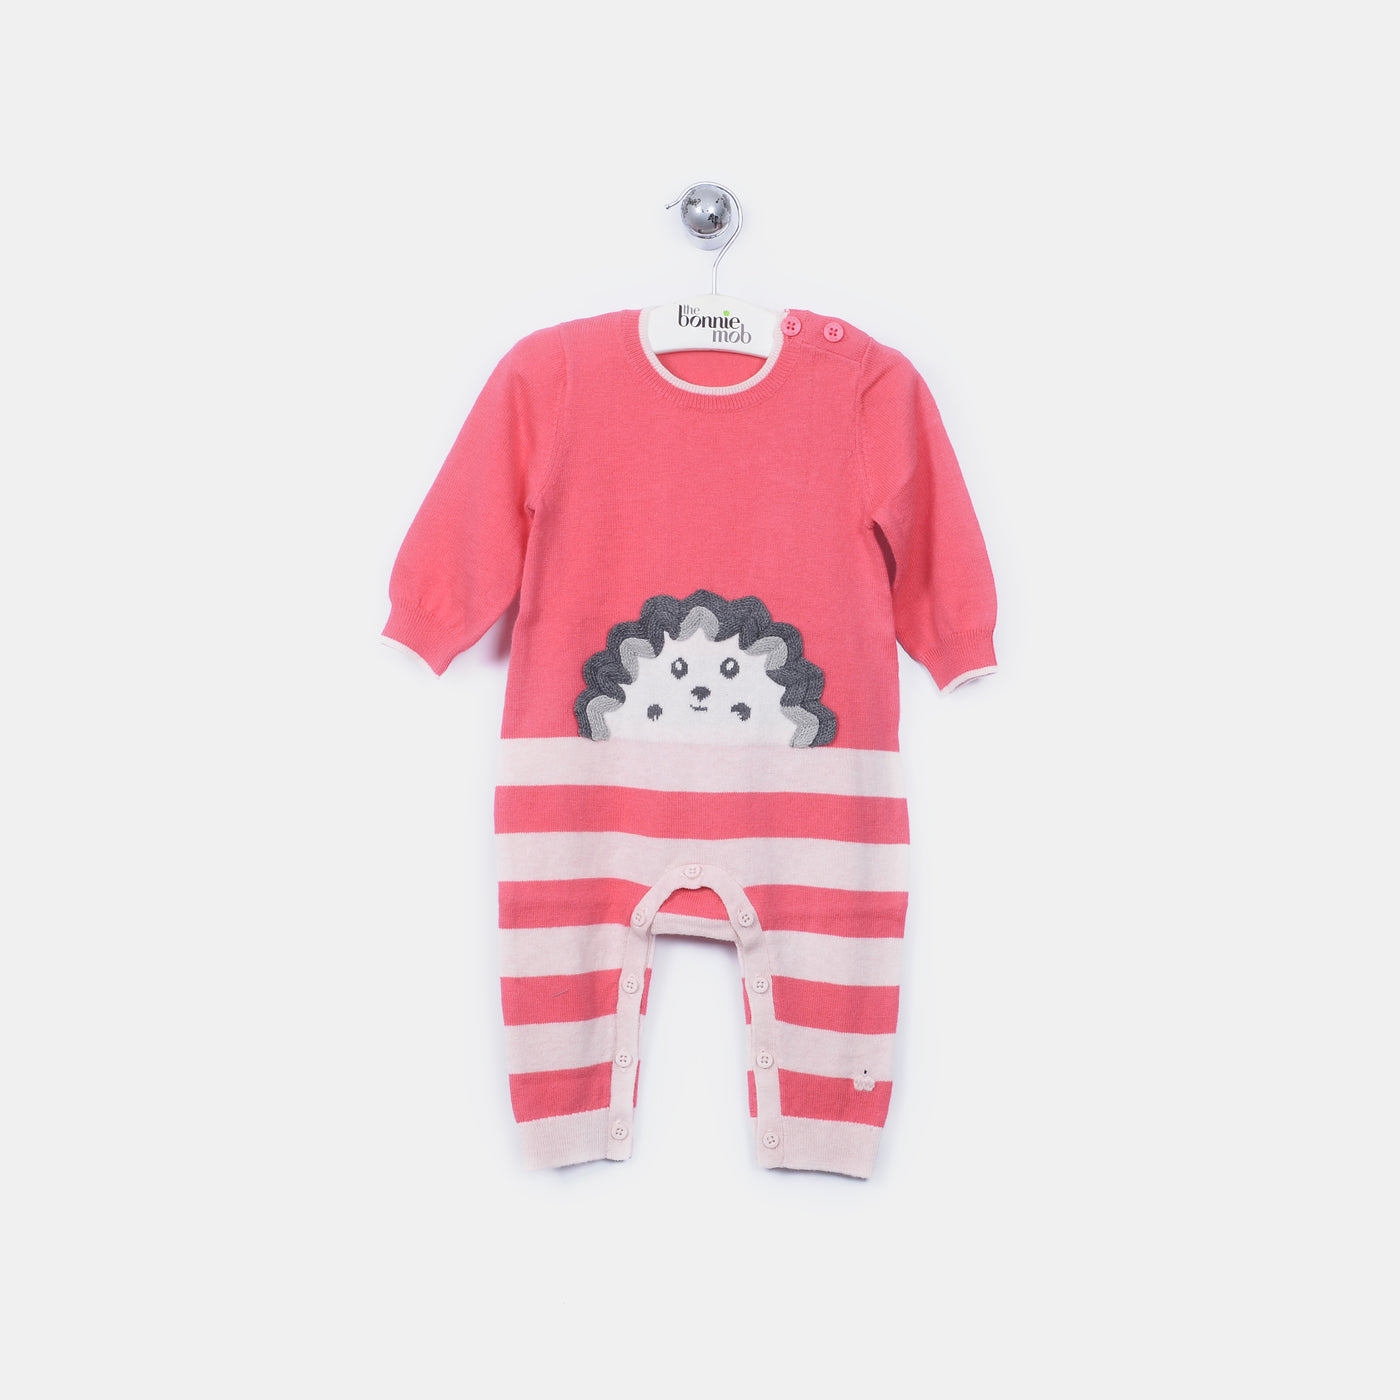 L-HOWARD - Spikey Hedghog Playsuit - Baby Girl - Alpine rose